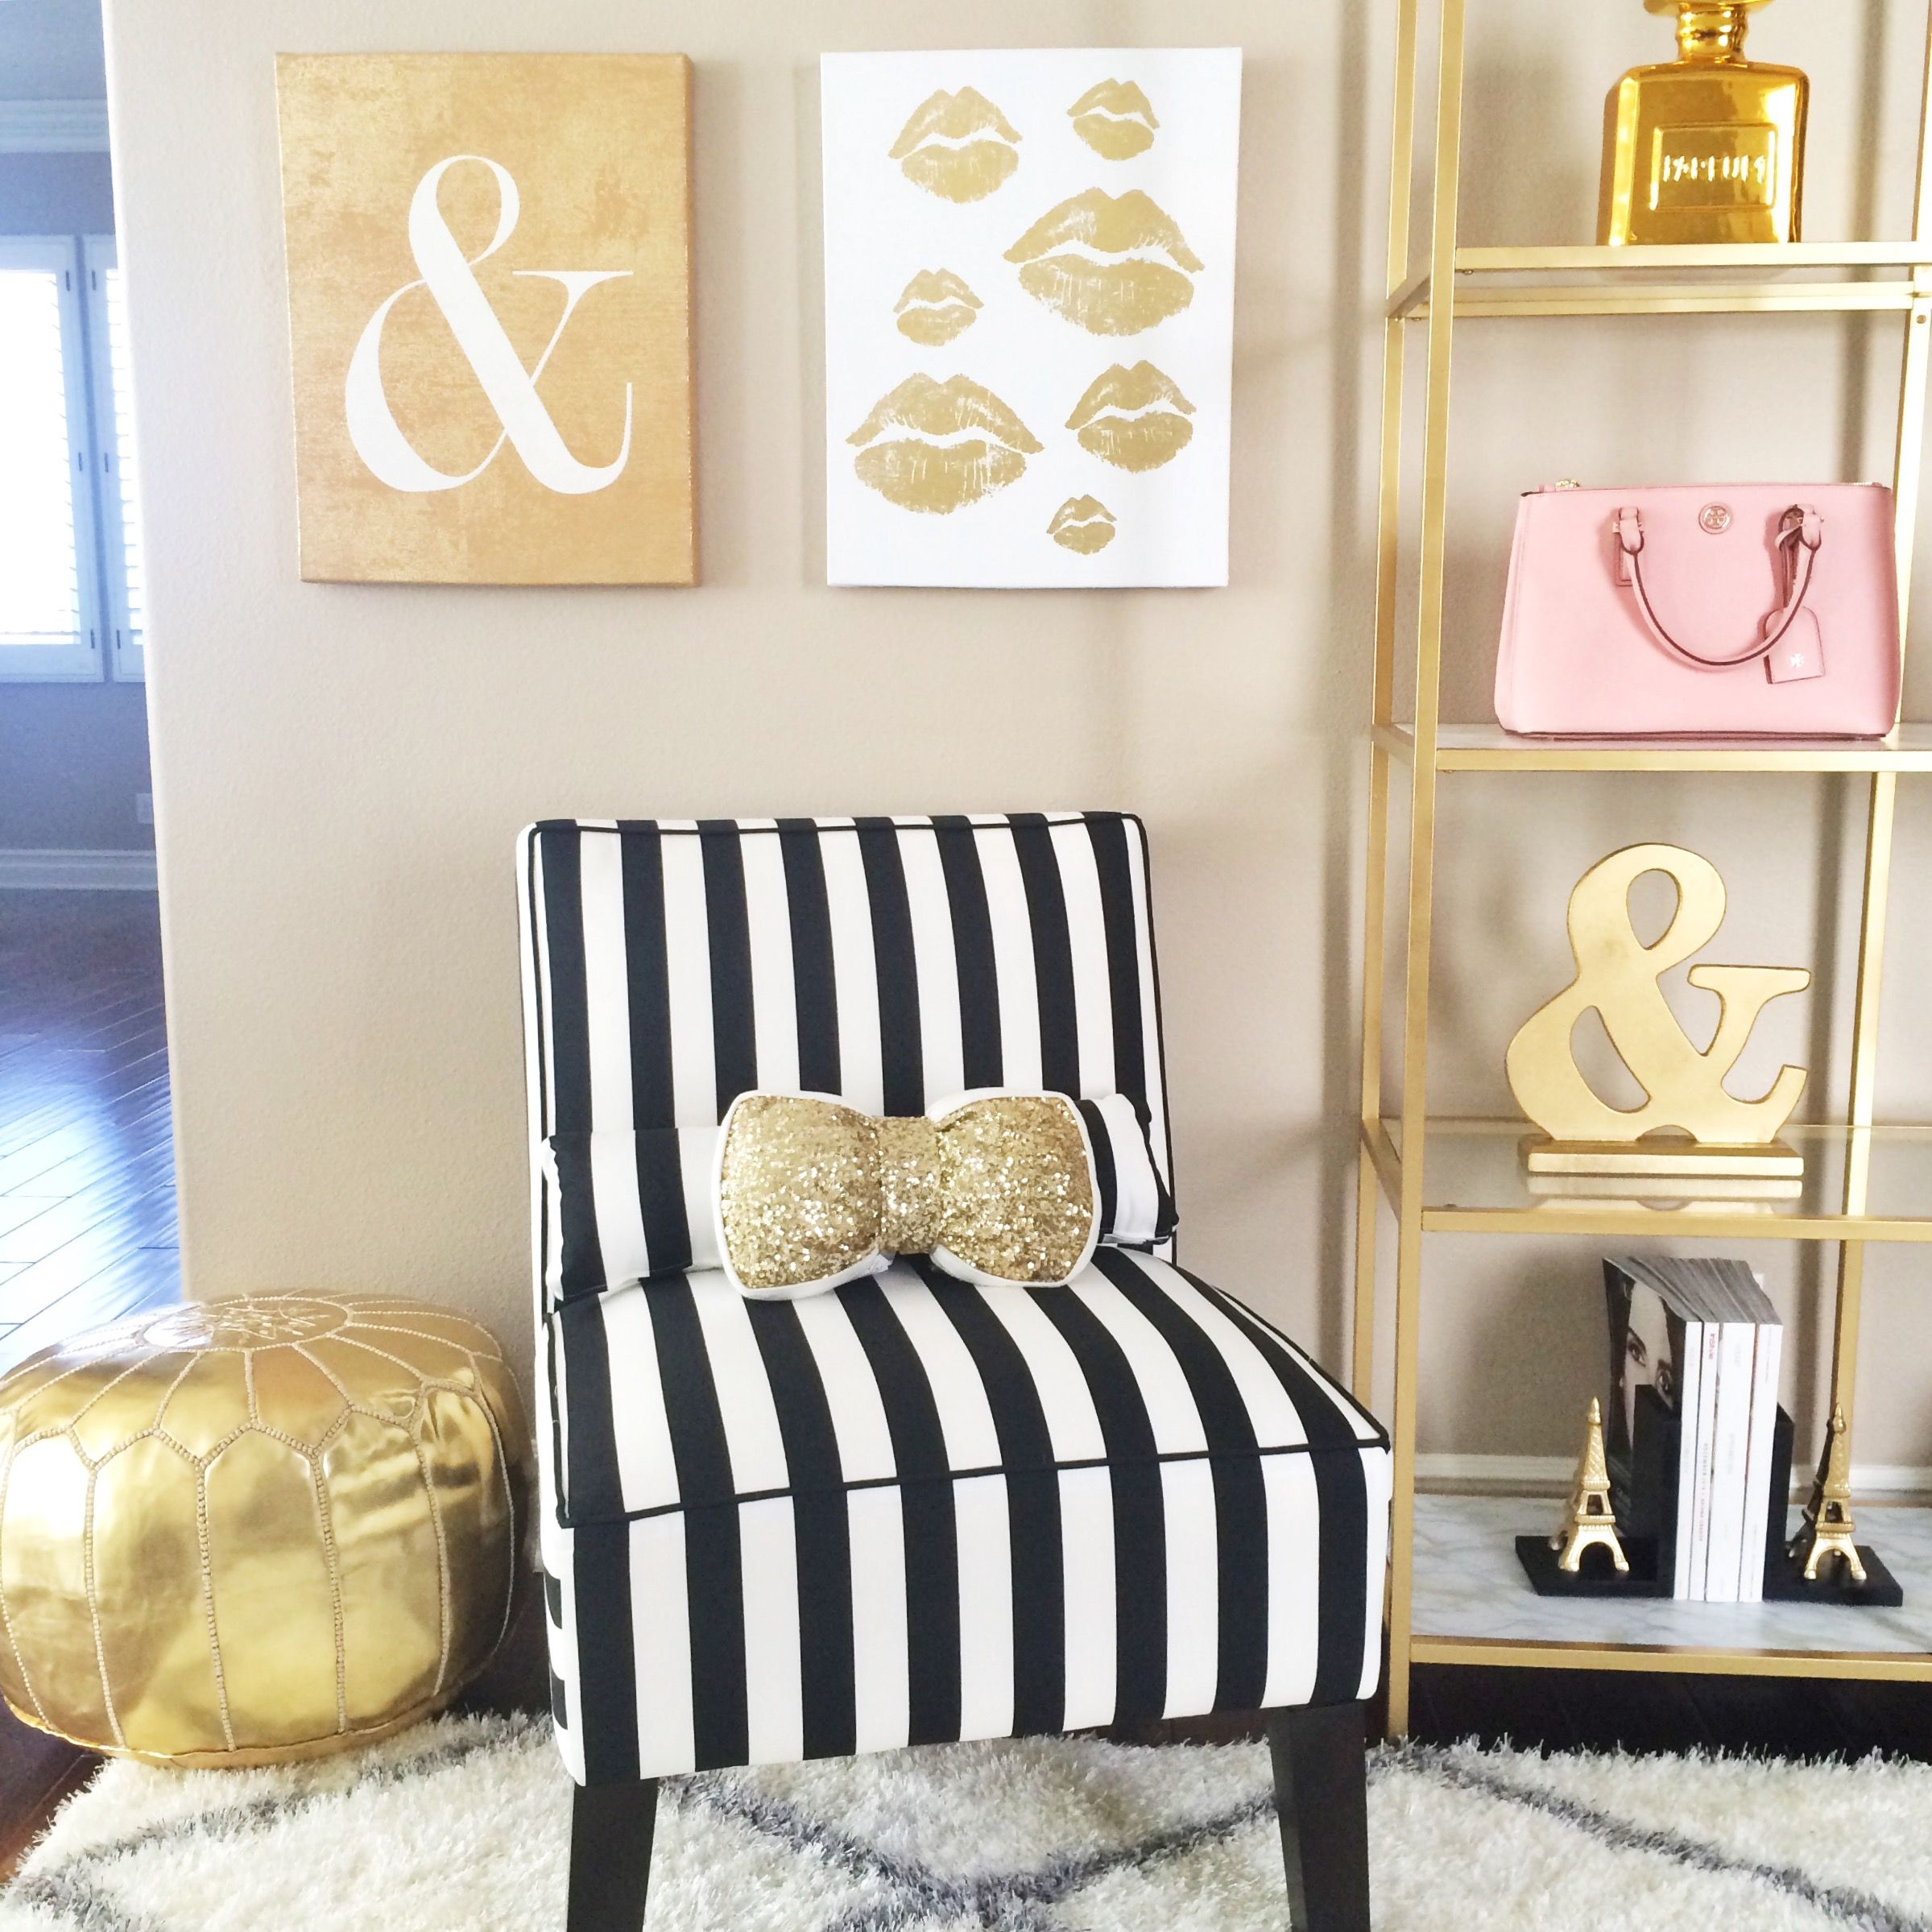 Gold Themed Bedroom Ideas Creative Cool Striped Armless Black And White Chair Gold Pouf Sequin Bow . Design Ideas